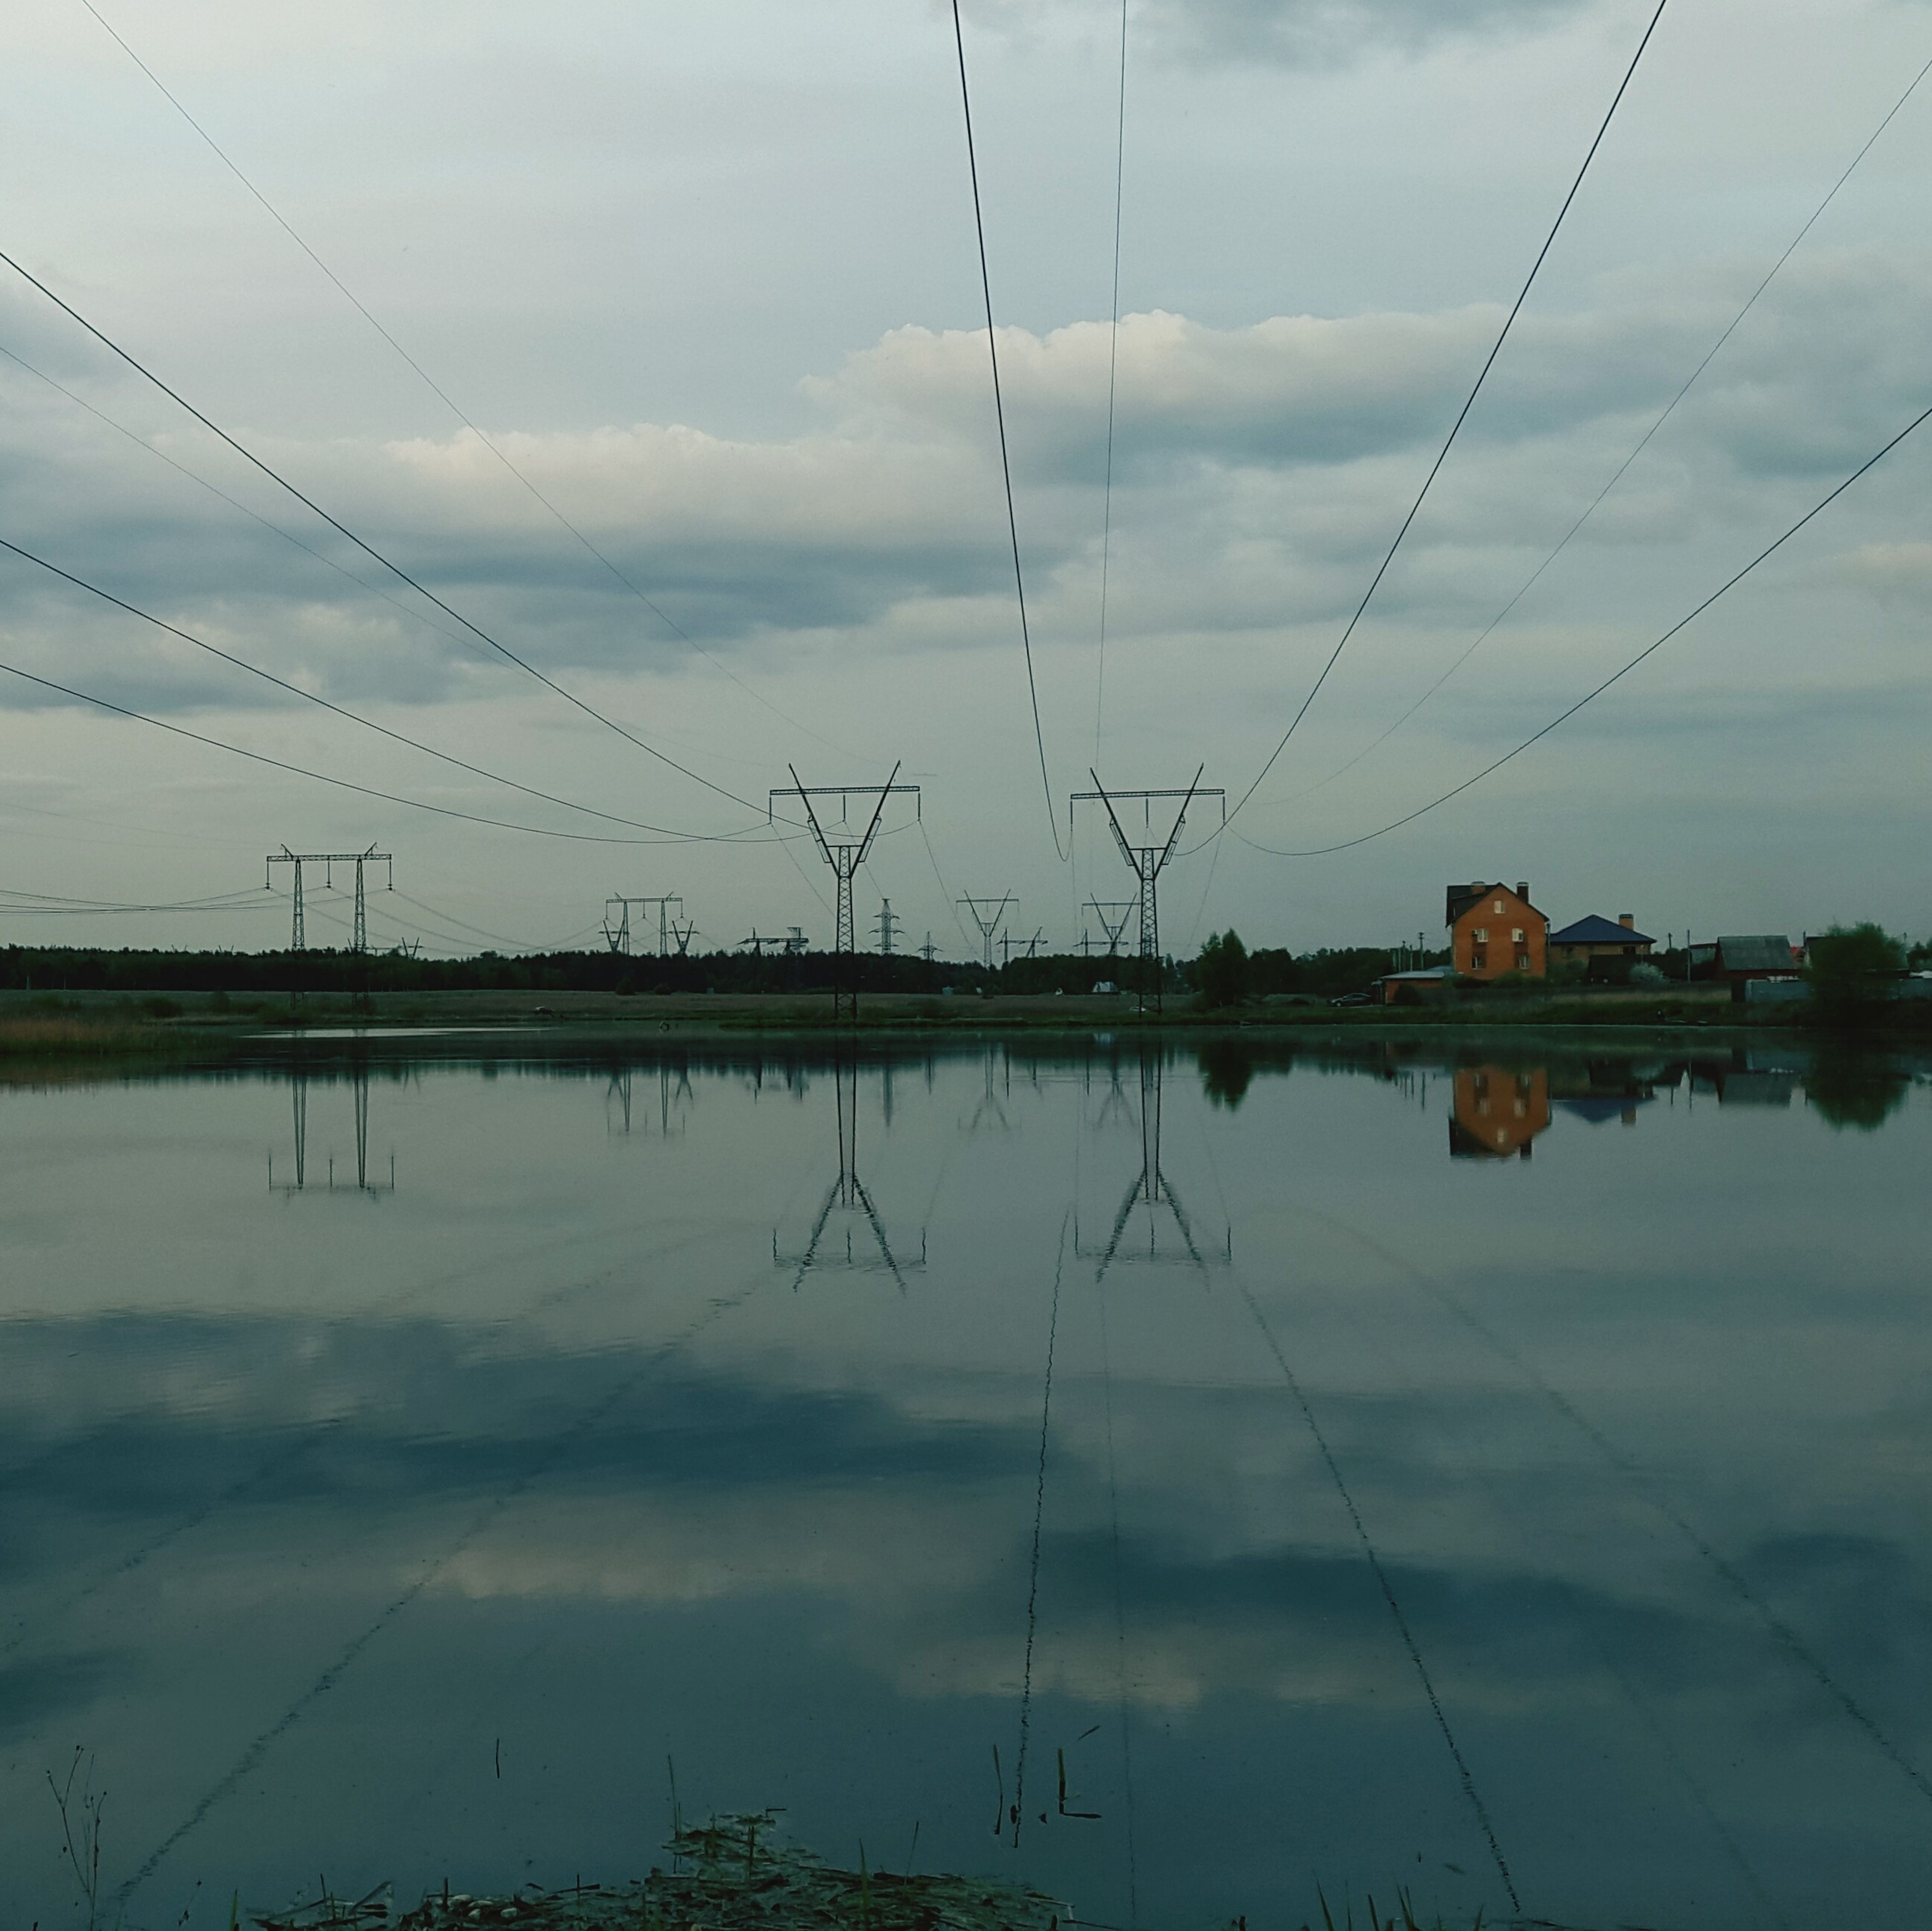 sky, water, reflection, cloud - sky, cloudy, power line, cloud, electricity pylon, lake, connection, standing water, tranquility, nature, fuel and power generation, electricity, weather, built structure, cable, tranquil scene, waterfront